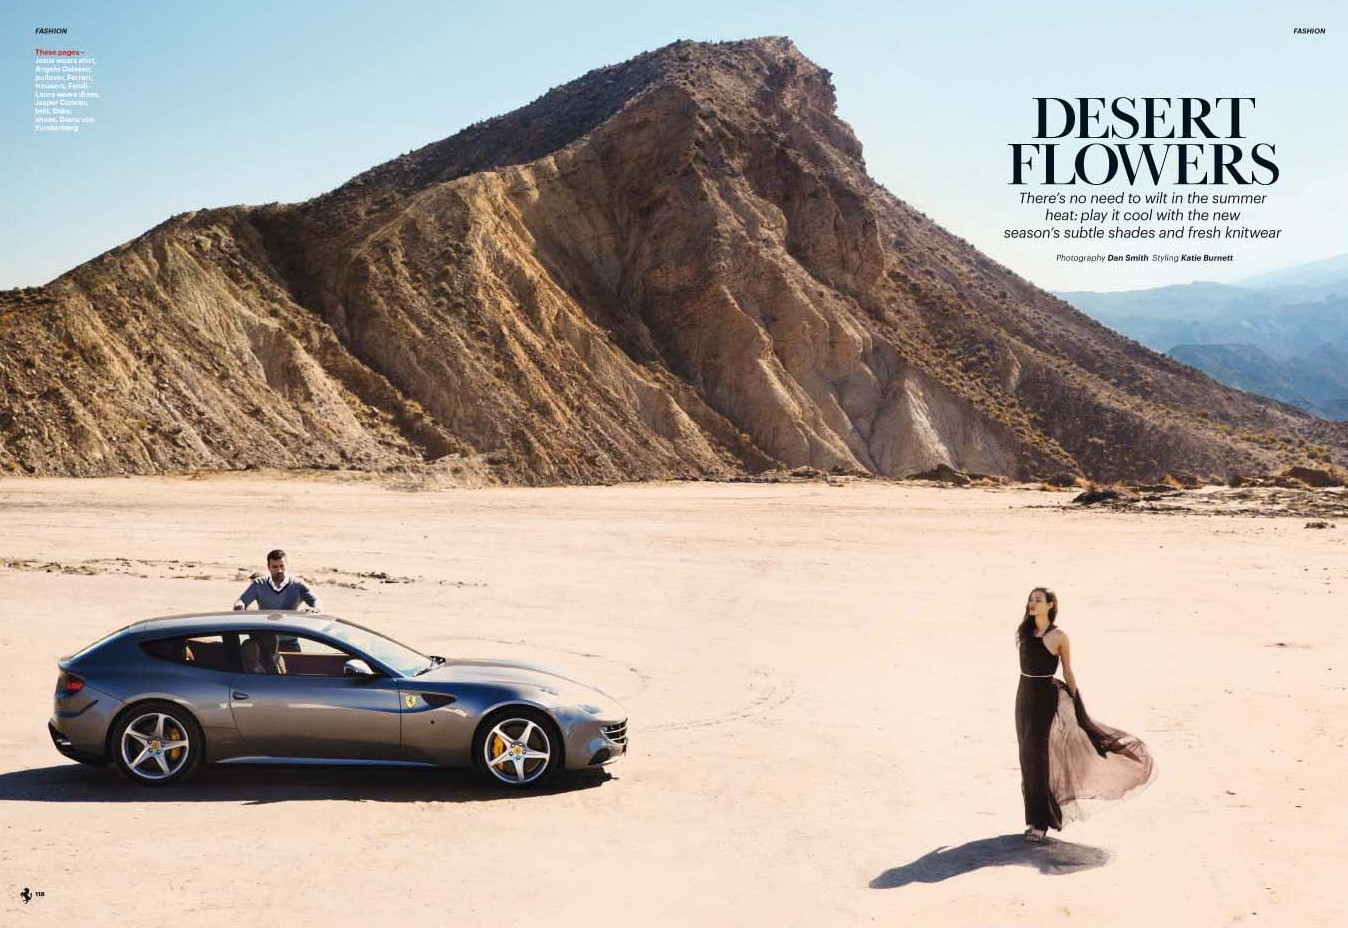 Ferrari Magazine_Condé Nast, Photo: Dan Smith, CD: Helen Niland